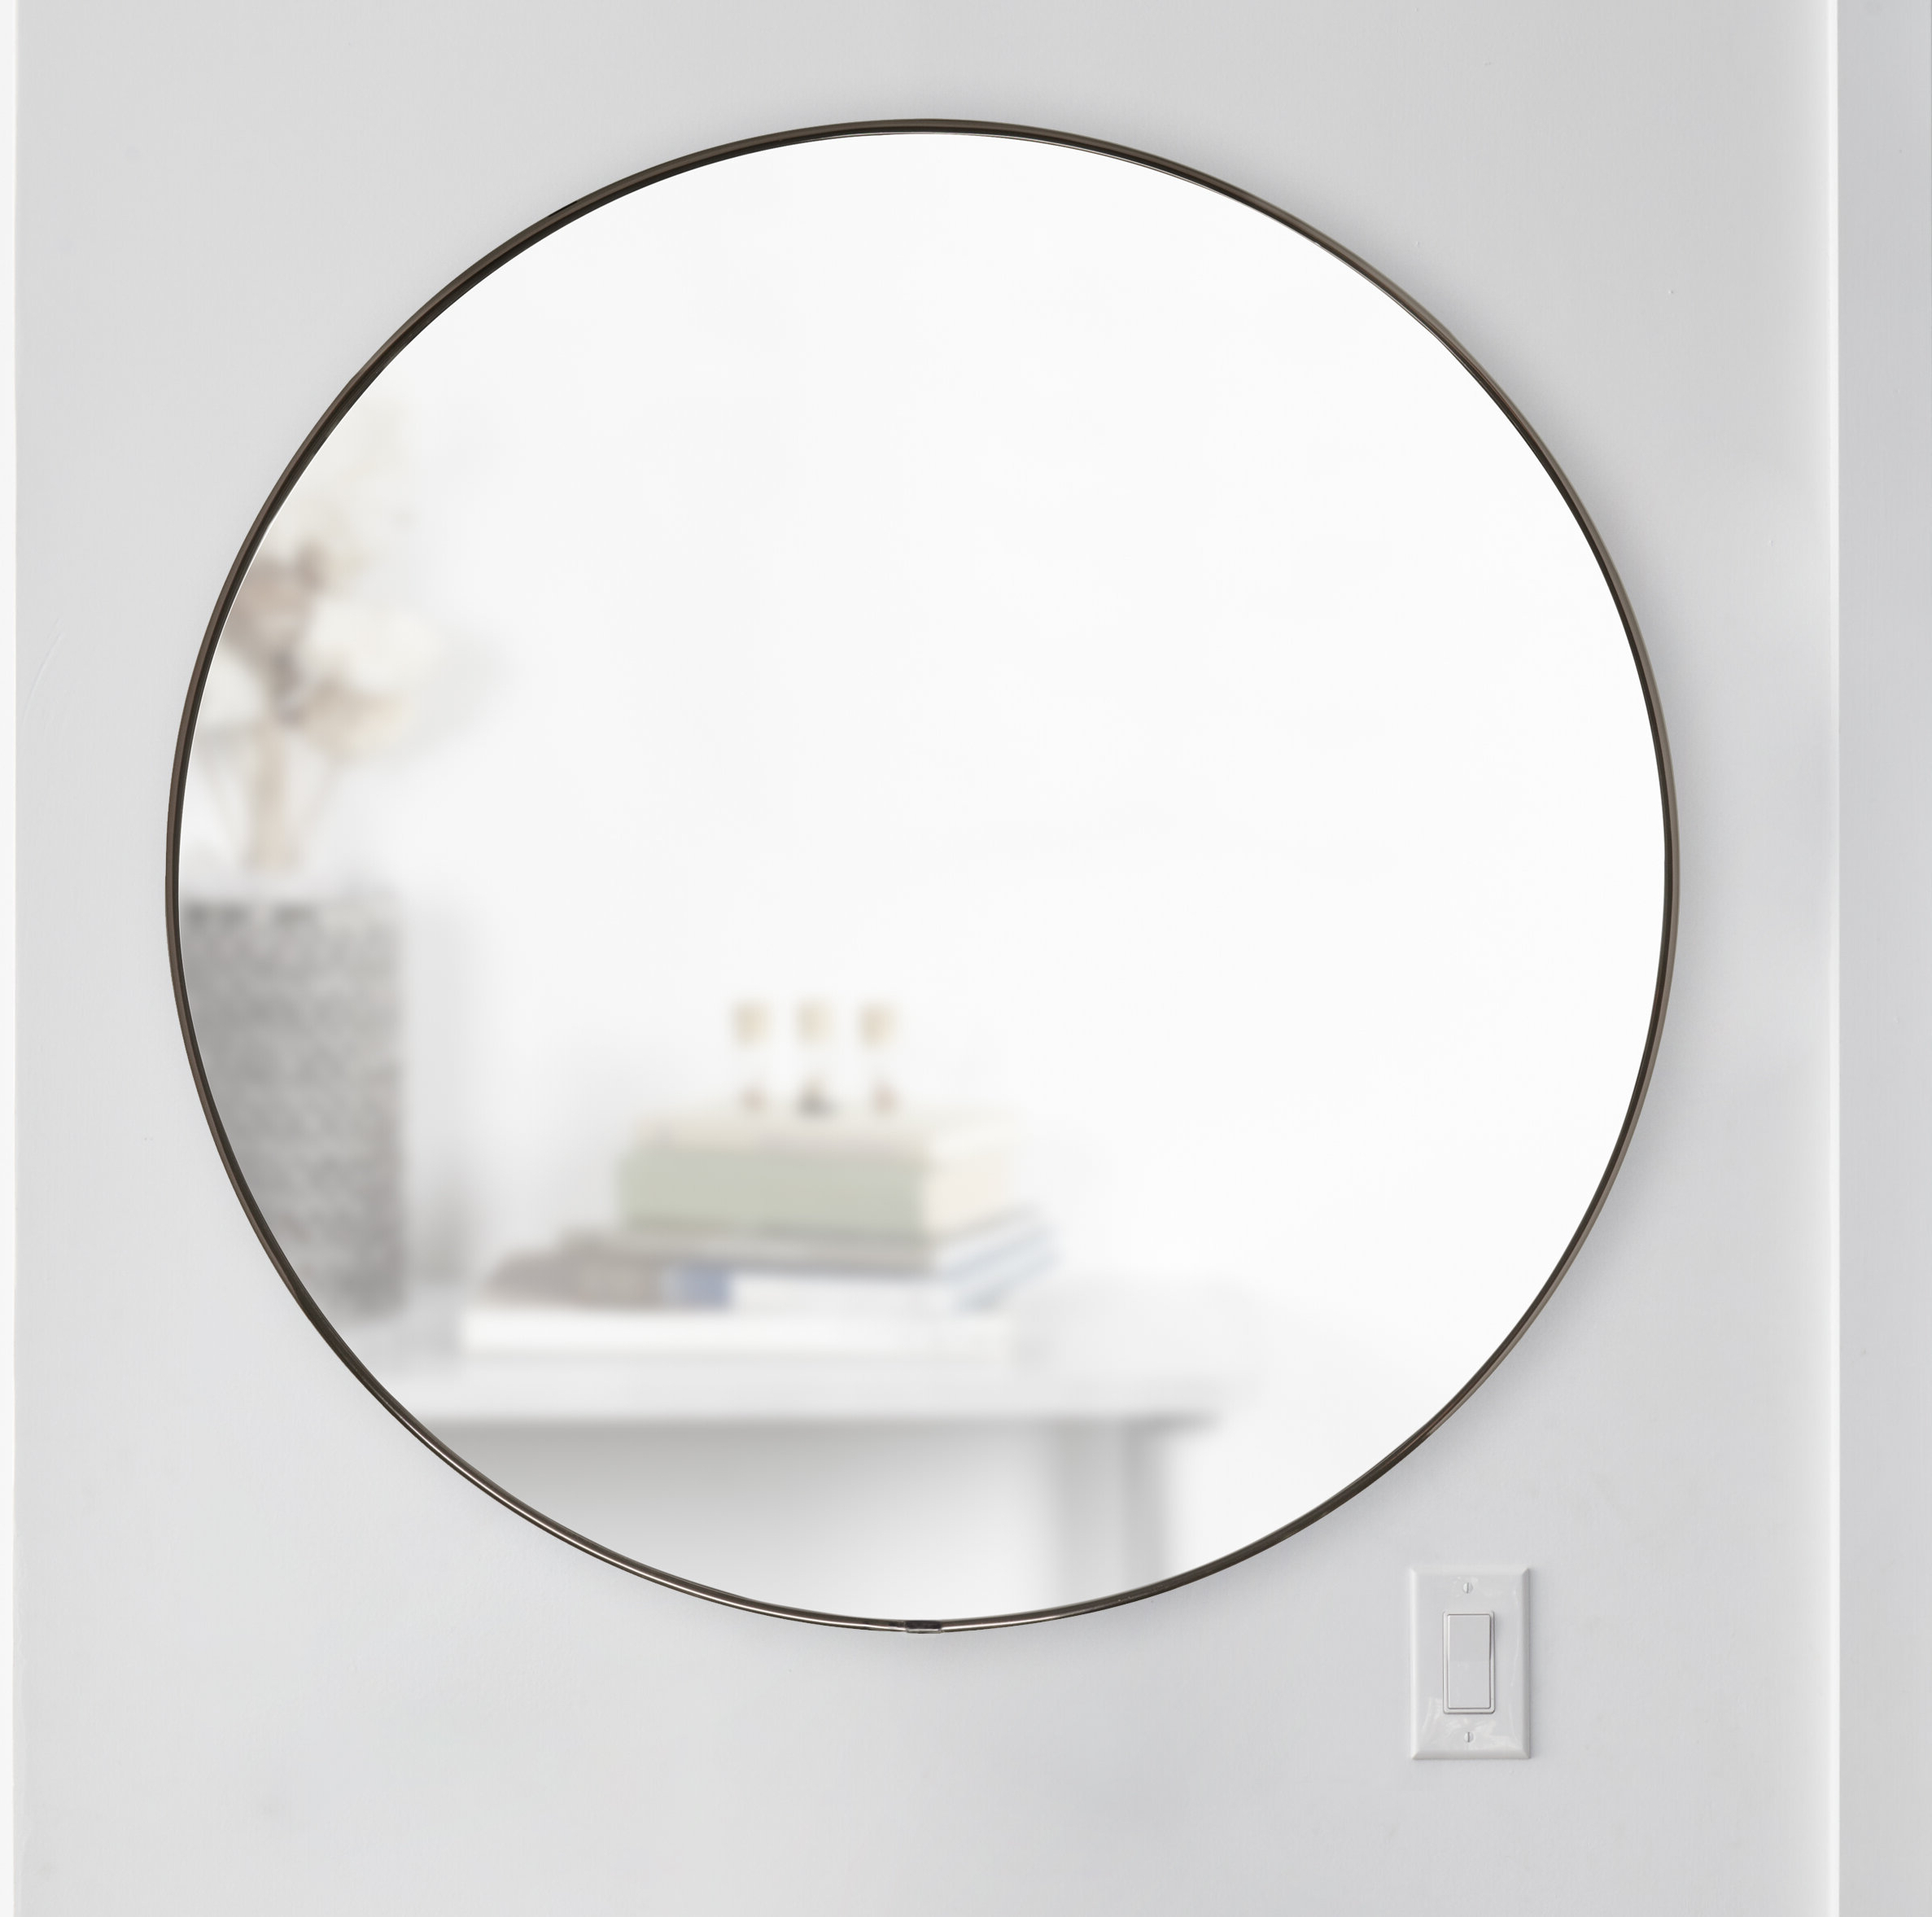 Most Recent Hubba Modern & Contemporary Accent Mirror Throughout Hub Modern And Contemporary Accent Mirrors (View 9 of 20)